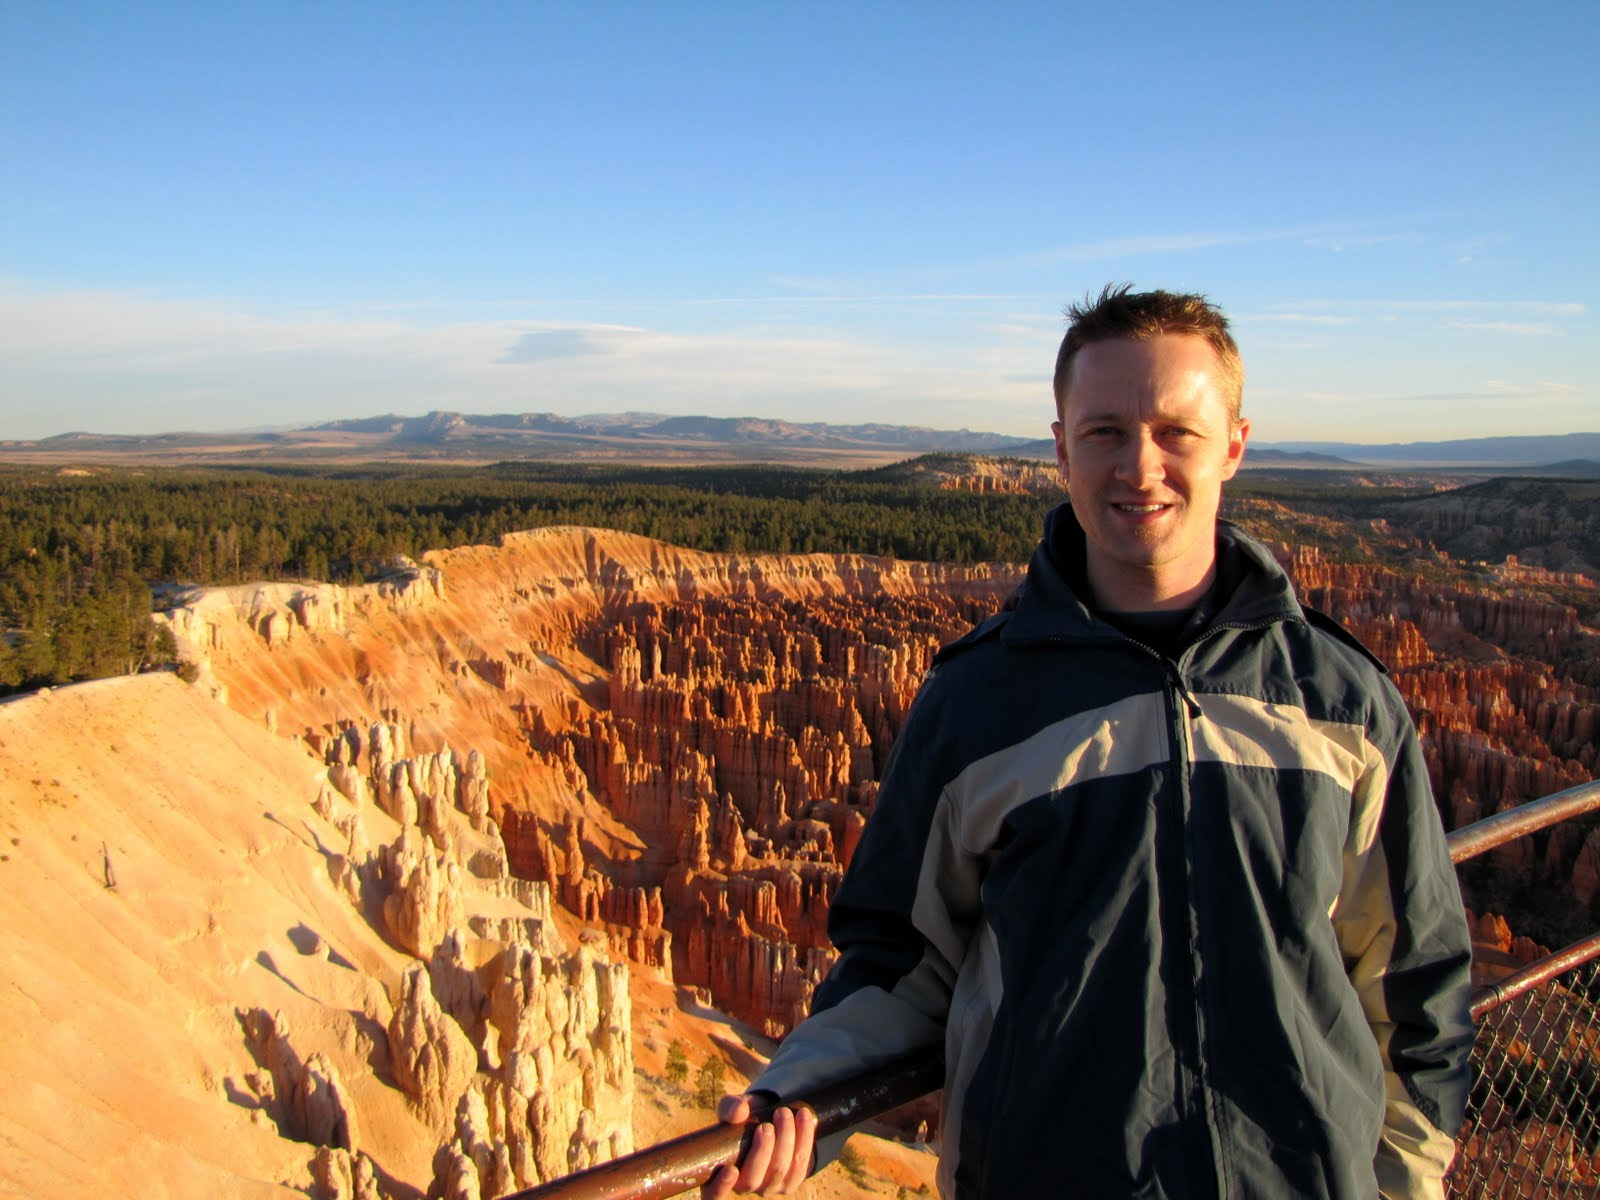 Me and the Organs of Bryce Canyon